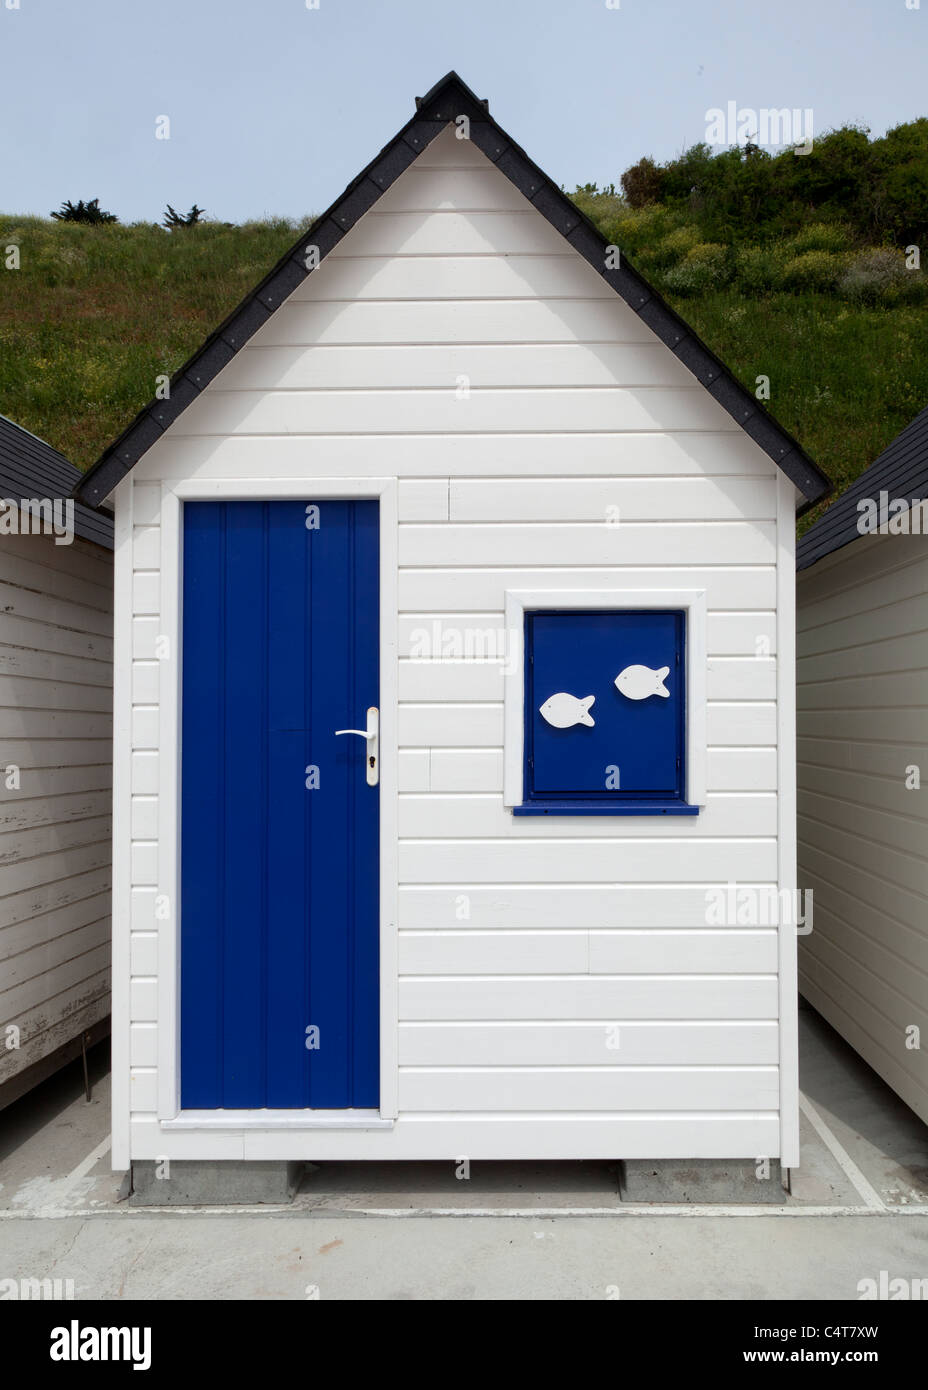 Dare to be different - all the other beach huts are painted white and blue but this one has the dual fish logos. - Stock Image